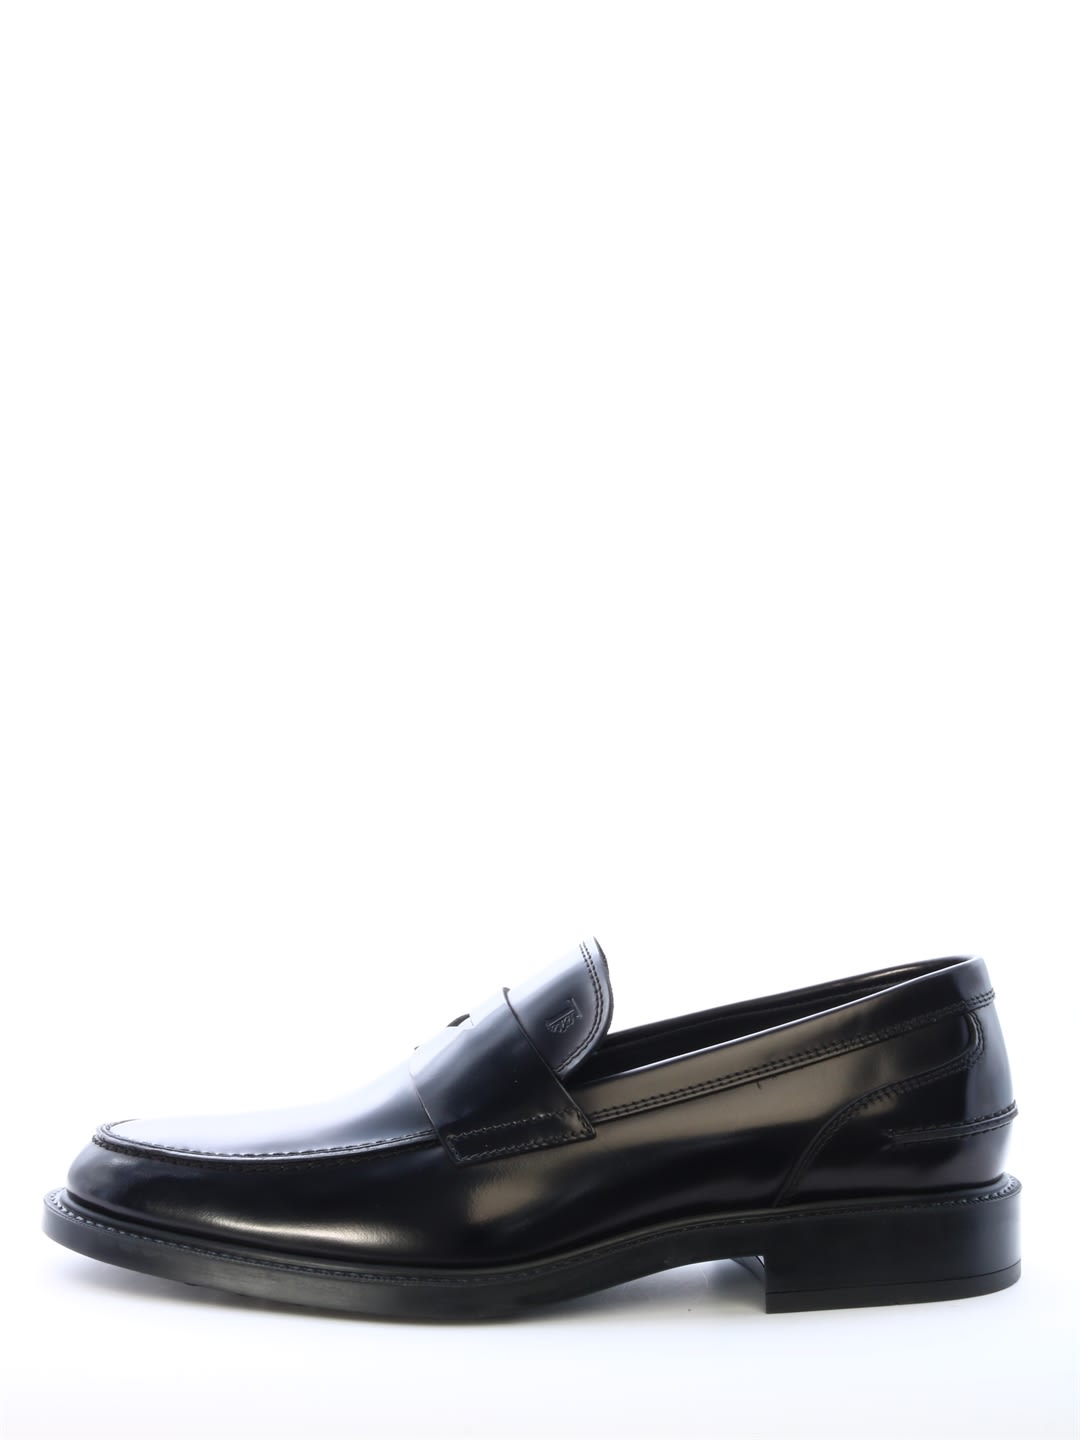 Mocassin in refined smooth leather with embossed mask, monogram Tods and rubber sole with embossed grommets. Composition: 100% Leather